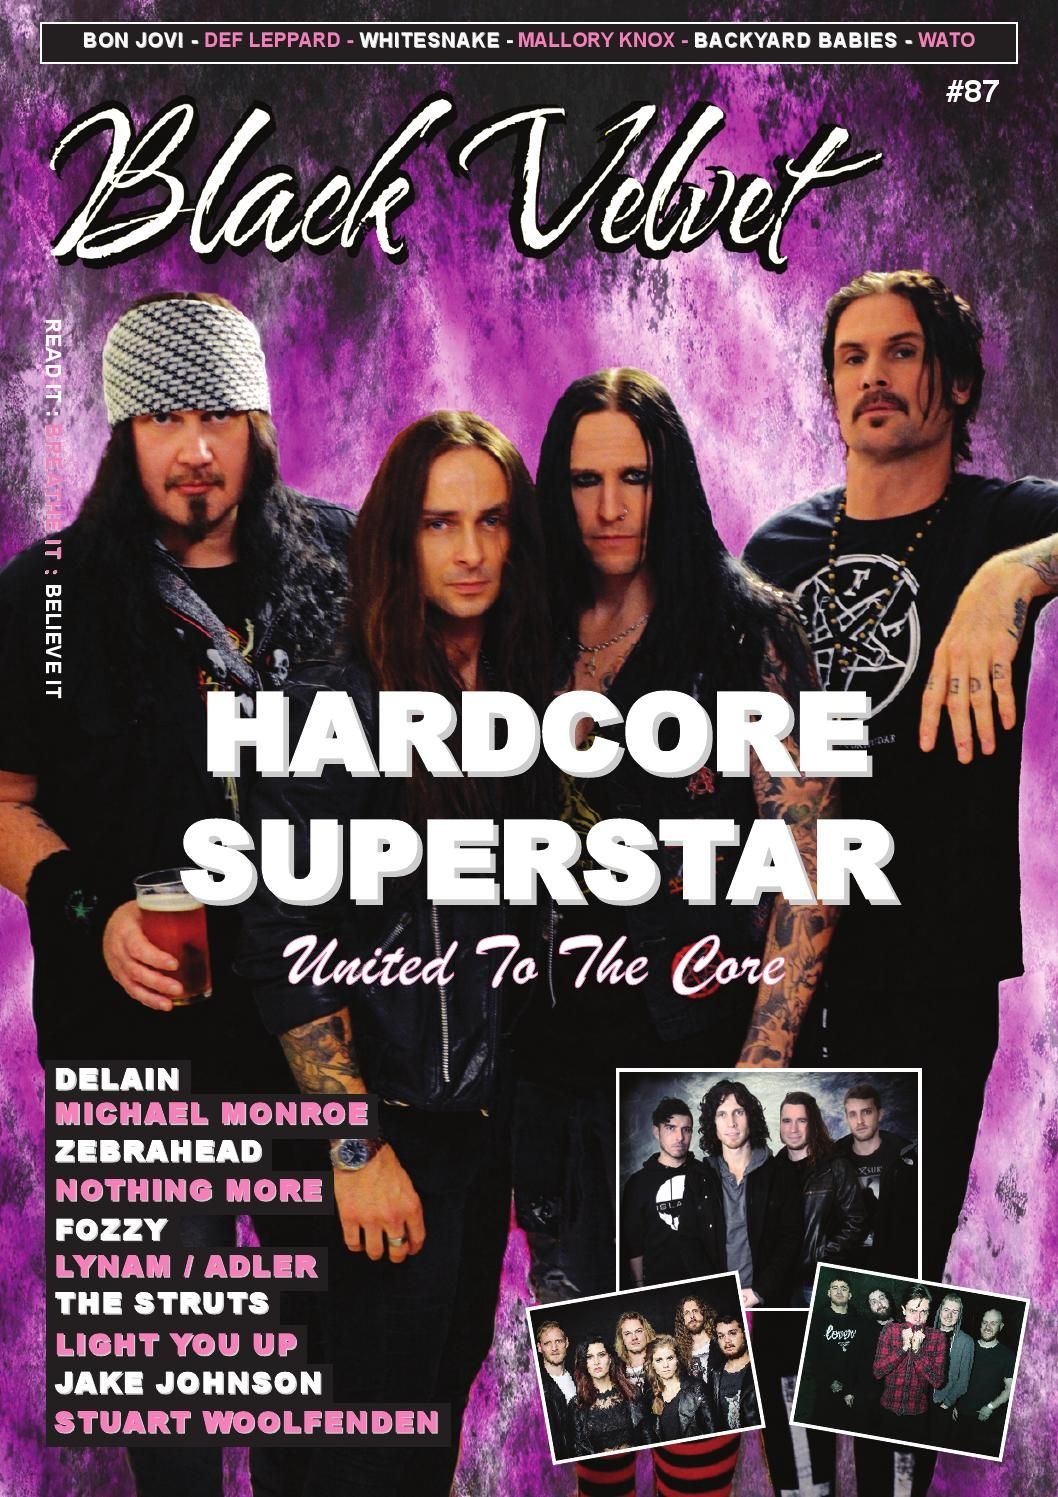 Black Velvet Issue 87  Features interviews with Hardcore Superstar, Delain, Michael Monroe, Zebrahead, Nothing More, Fozzy, Lynam / Adler, The Struts, Light You Up, Jake Johnson and Stuart Woolfenden plus reviews of Bon Jovi, Def Leppard / Whitesnake, Mallory Knox, Backyard Babies, We Are The Ocean and more.